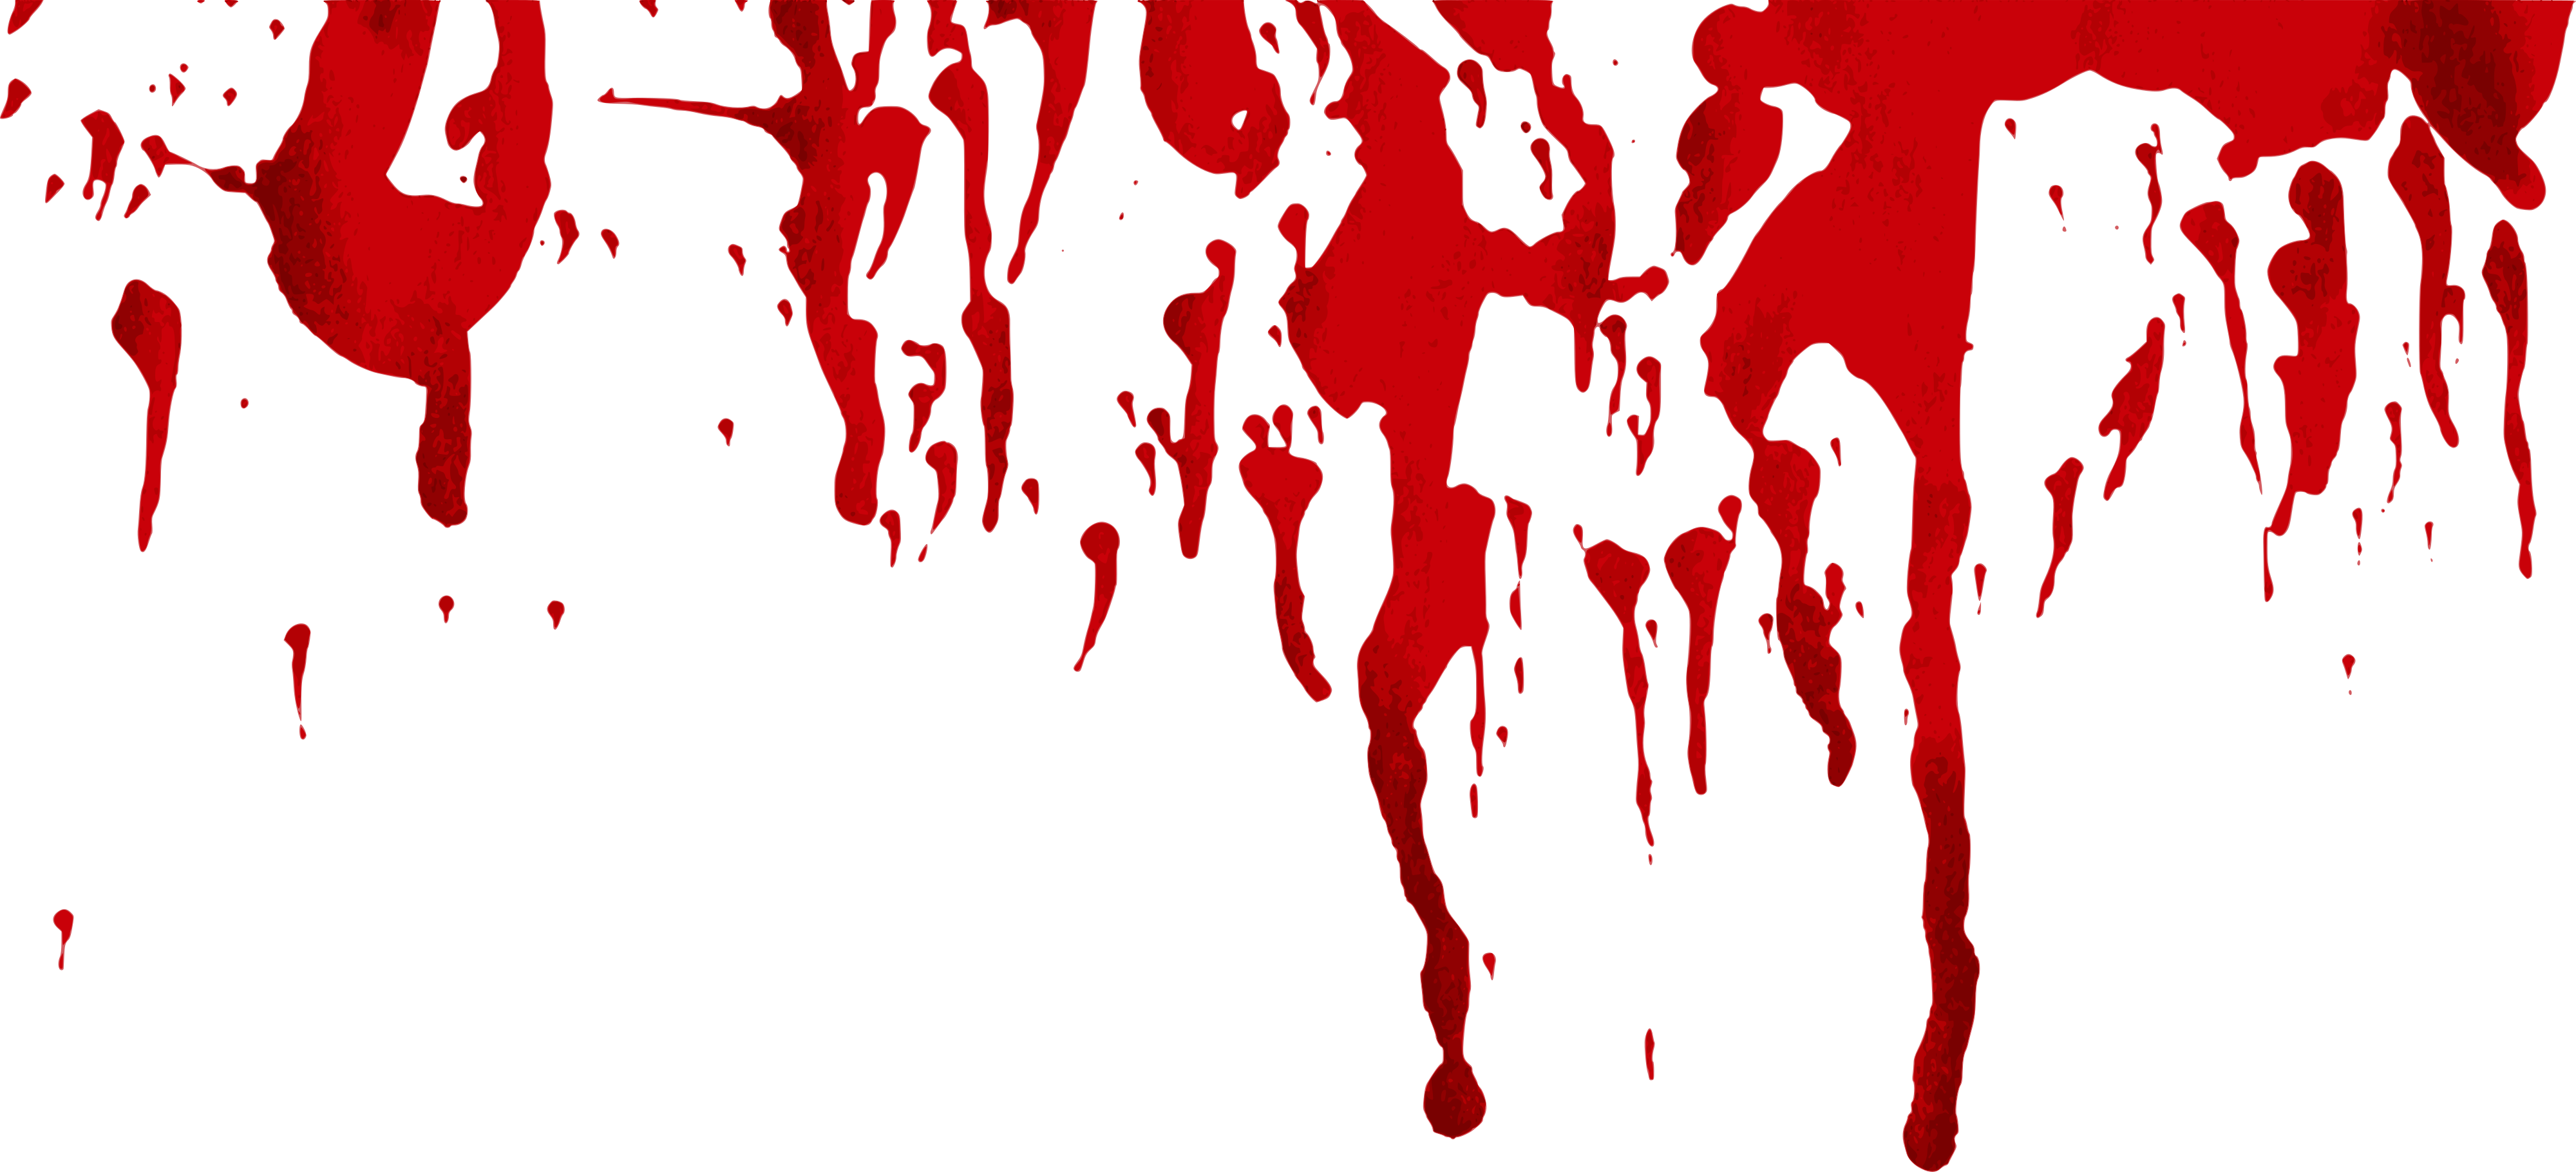 8 Blood Splatter Drip Png Transparent Onlygfx Com Variations include pools, sprays, handprints, and footprints. 8 blood splatter drip png transparent